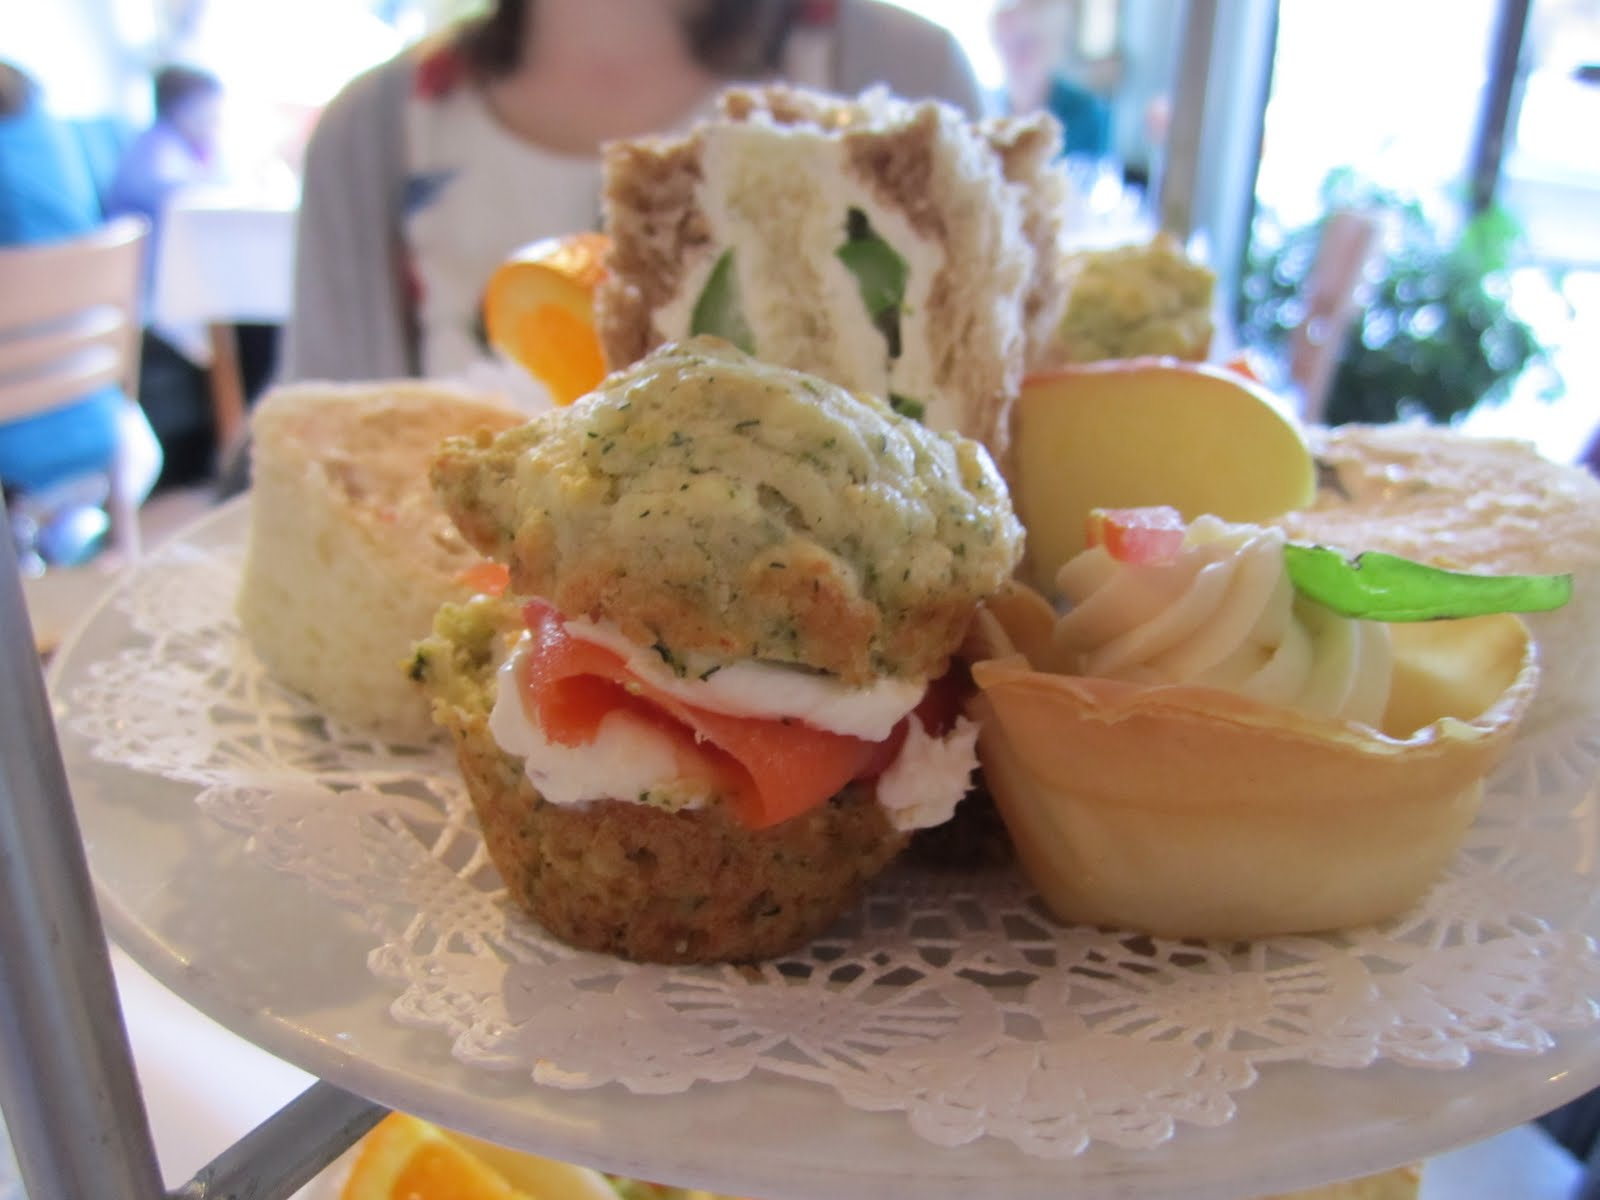 Tea Sandwiches With Cream Cheese And Asparagus Recipes — Dishmaps